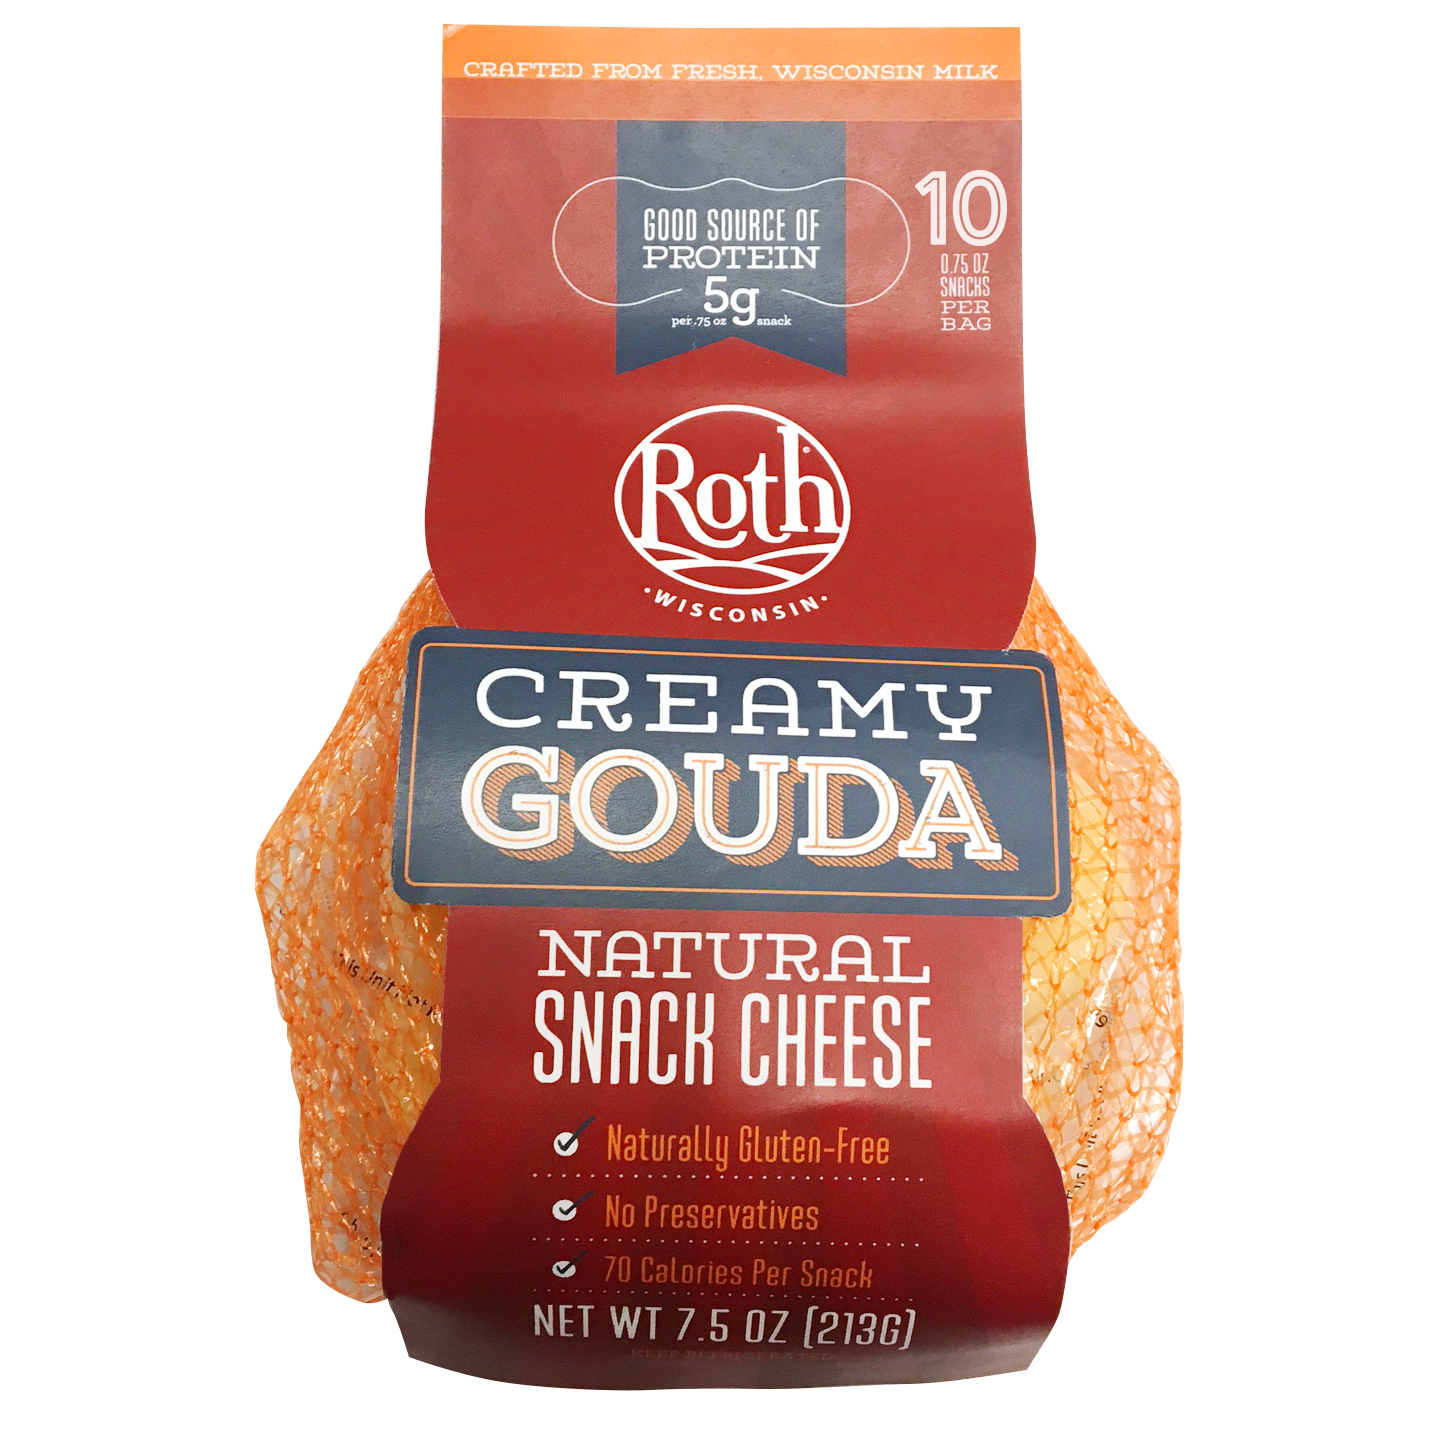 Creamy Gouda Snack Cheese